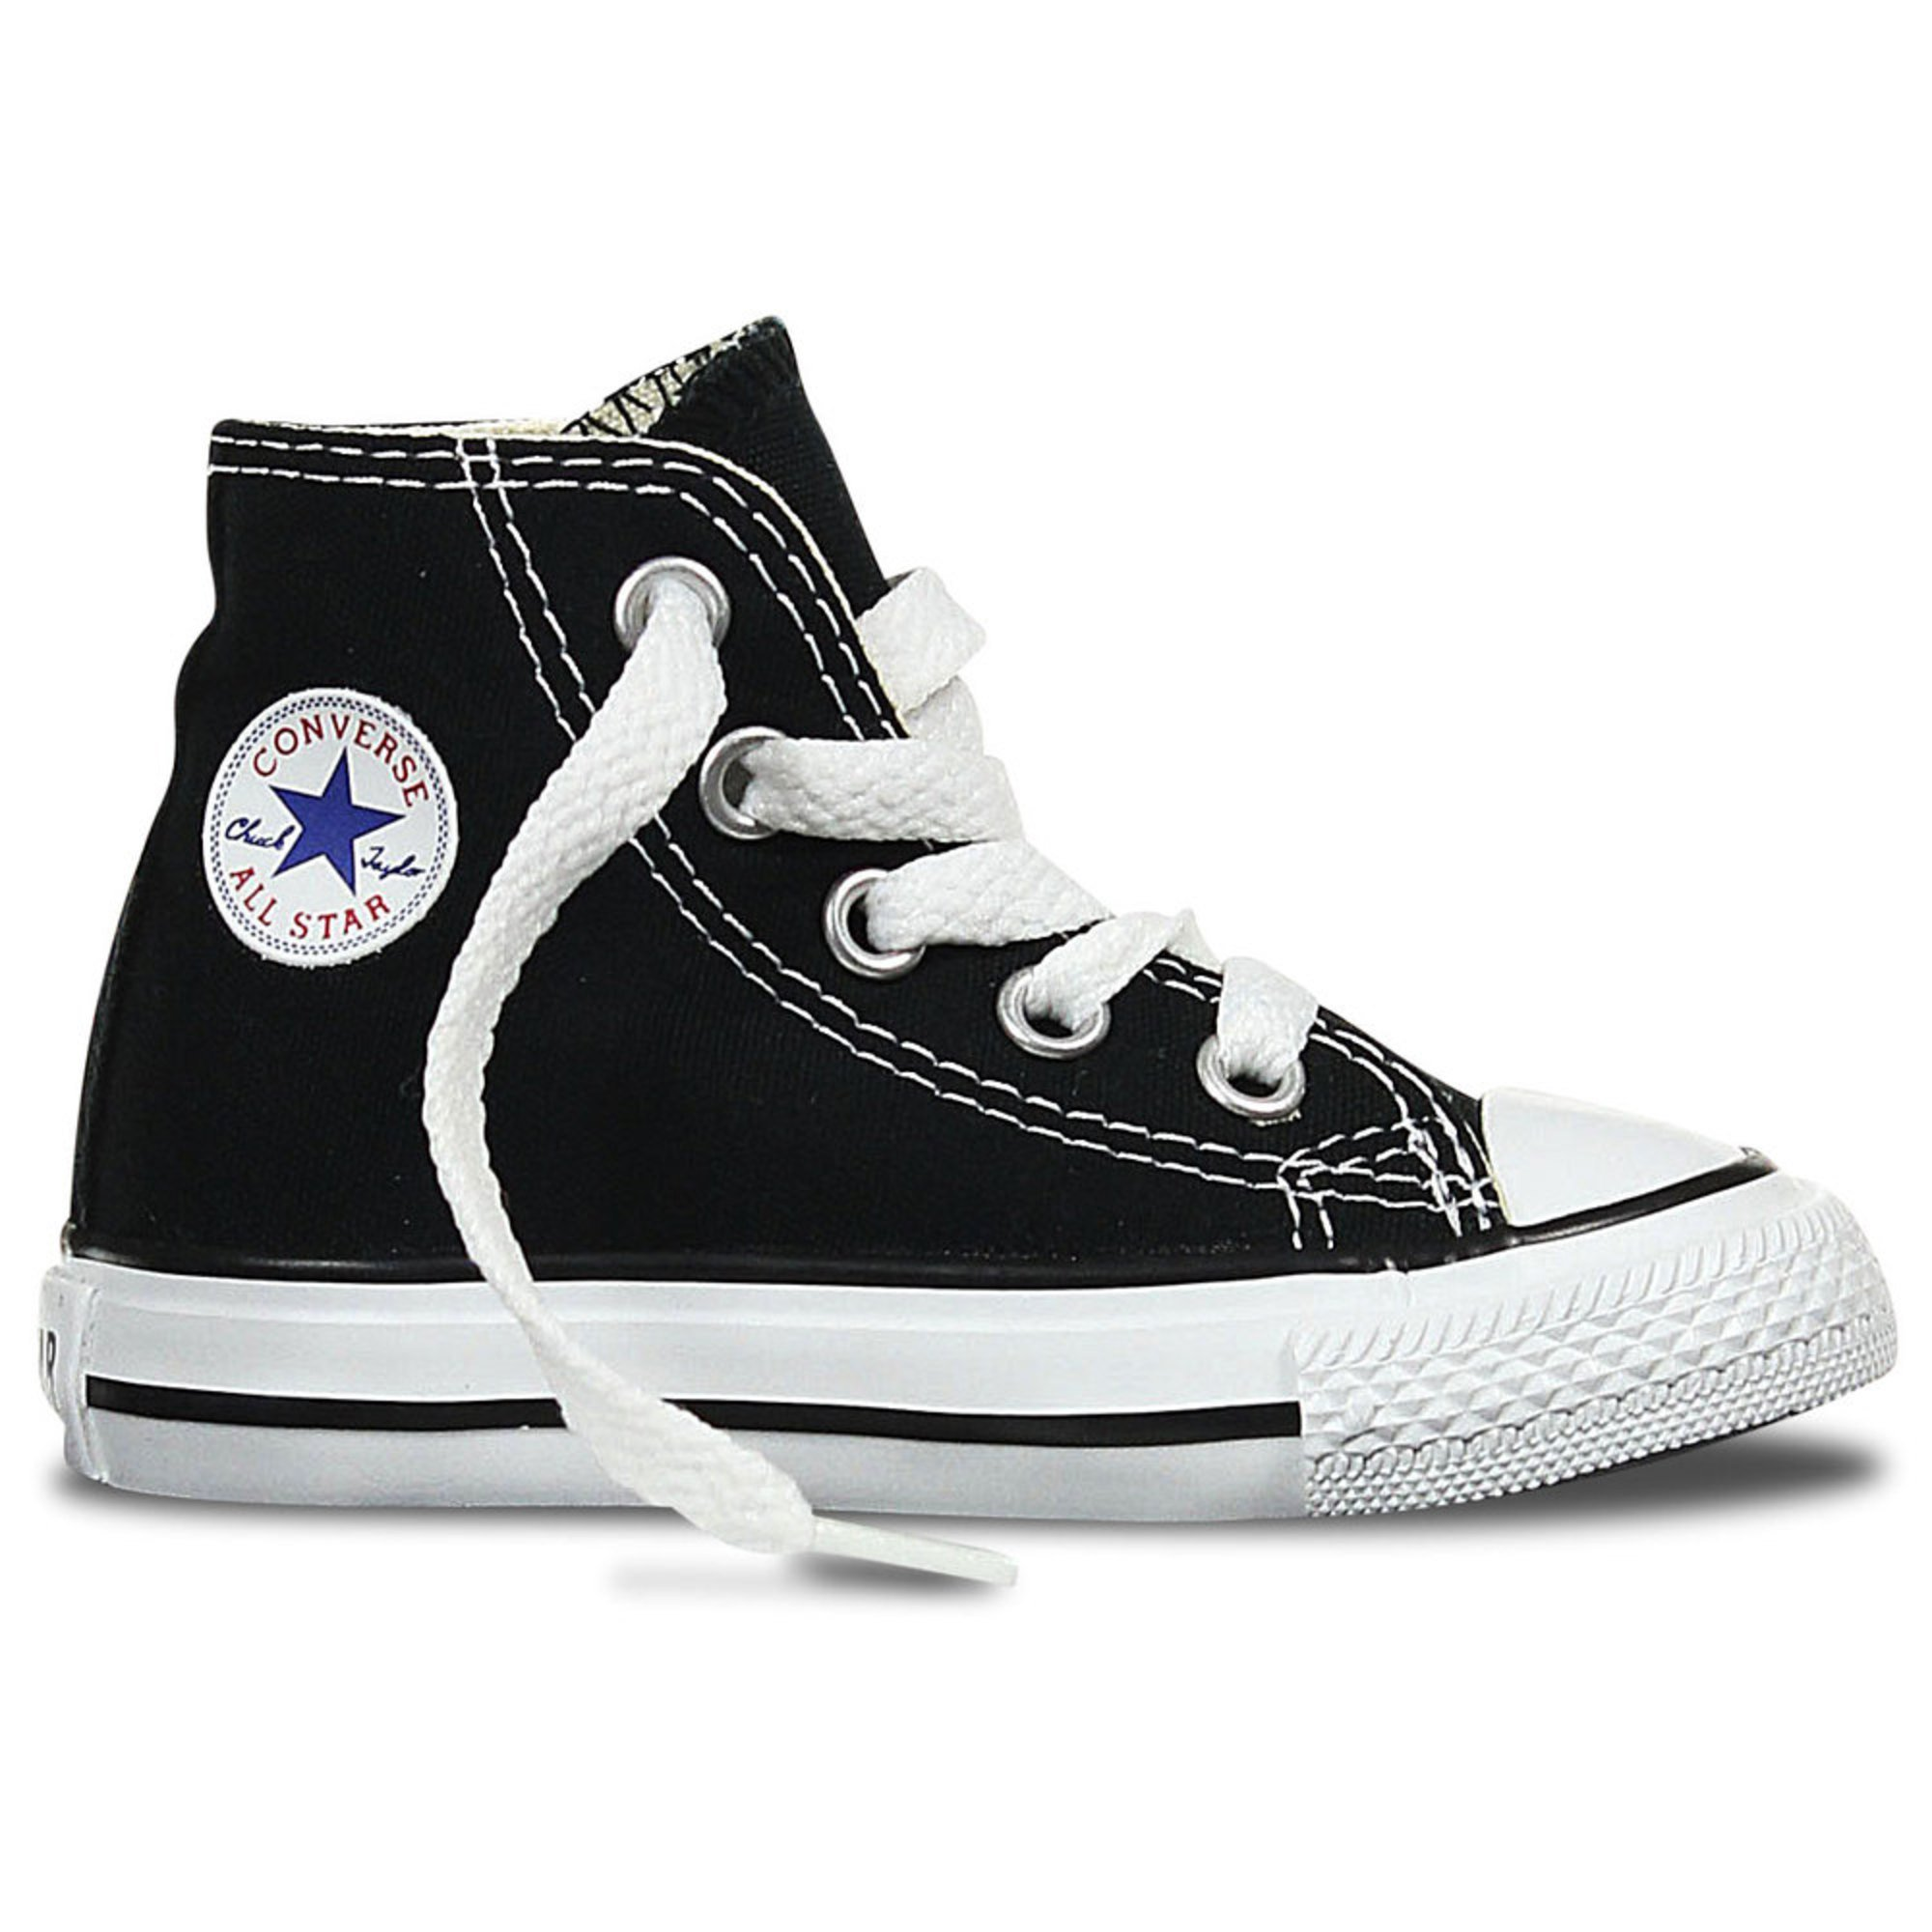 8c4ebc7c1d Converse. Converse Boys Chuck Taylor All Star Hi Top Basketball Shoe (Infant /Toddler)